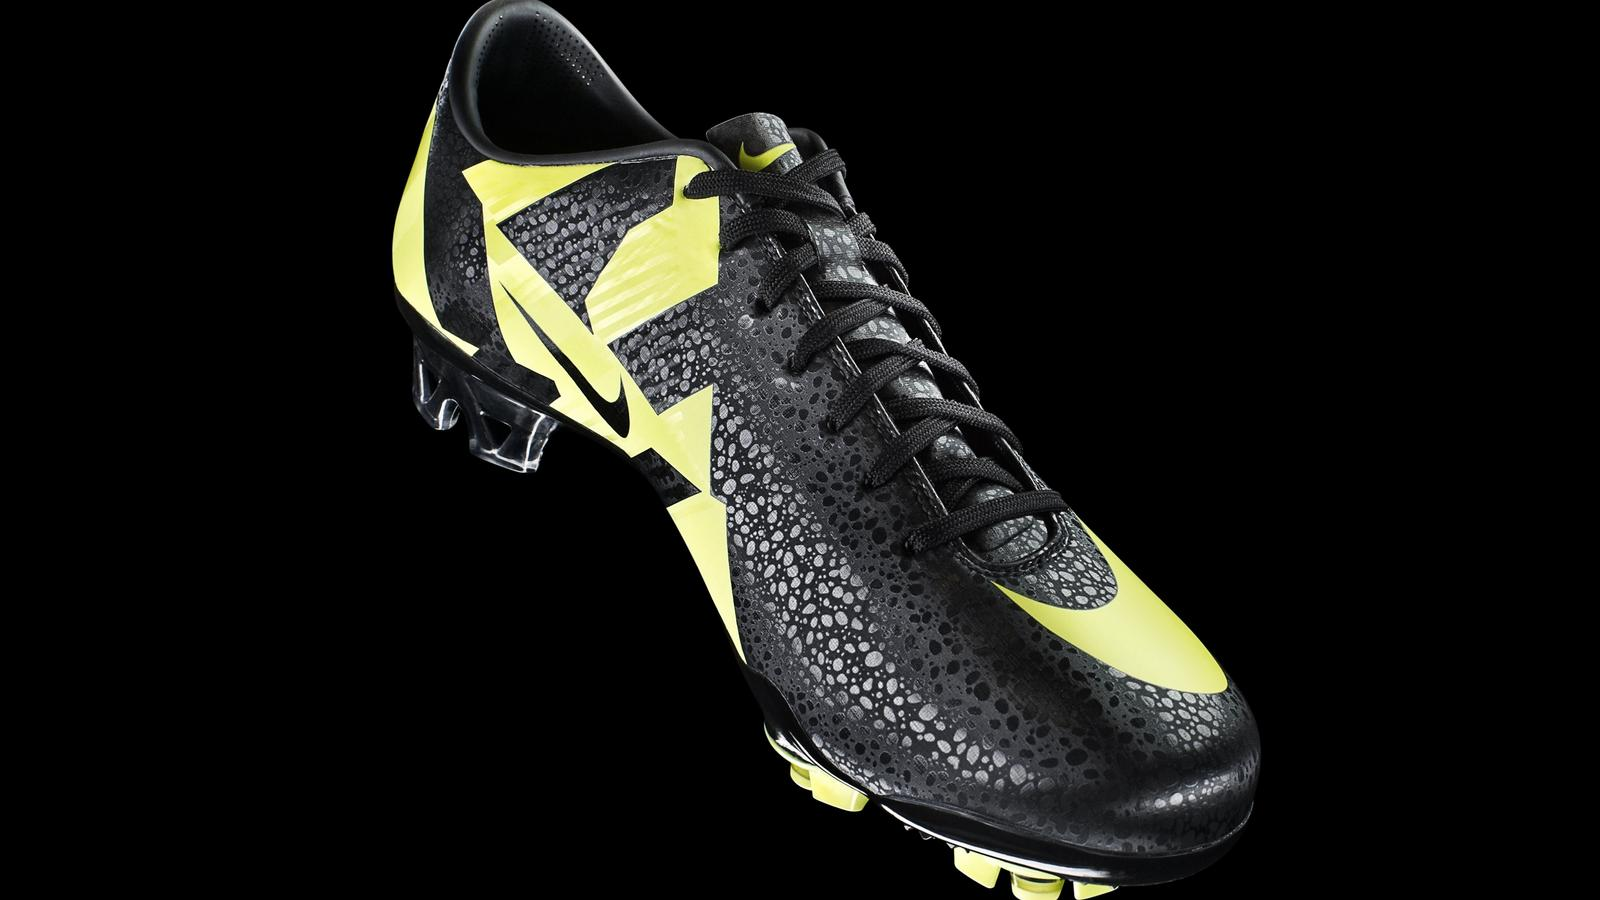 M31_NIKE _VAPOR_SUPERFLY 35245_Black